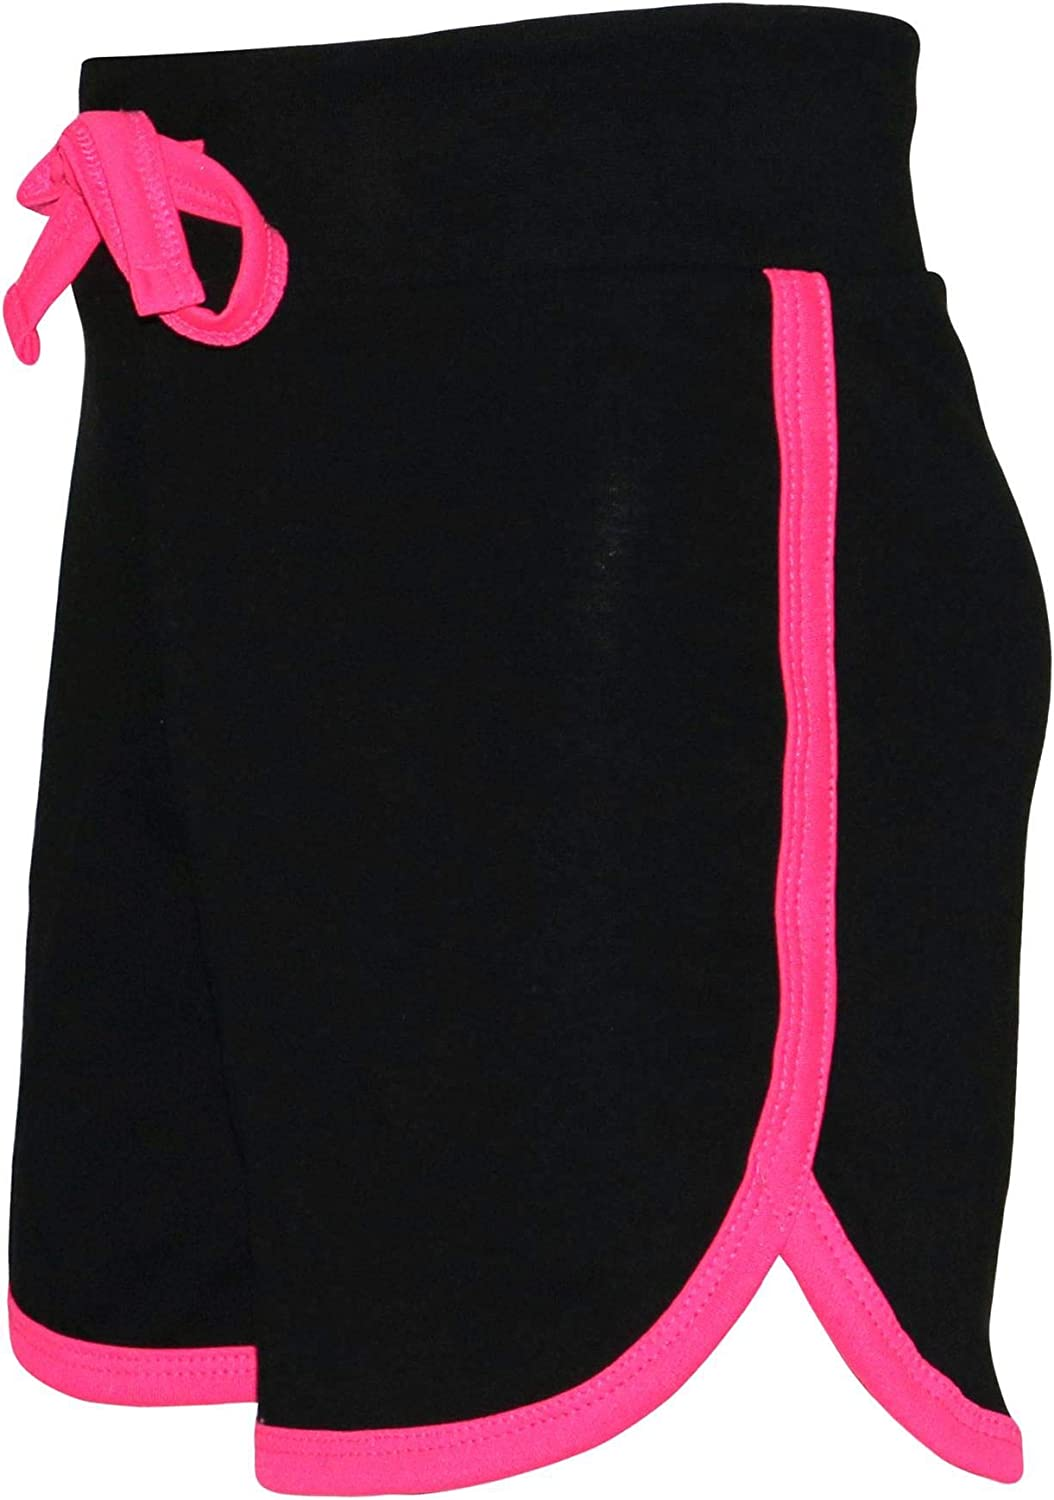 Kids Girls Shorts 100/% Cotton Gym Sports Black /& Neon Pink Summer Hot Pant Short